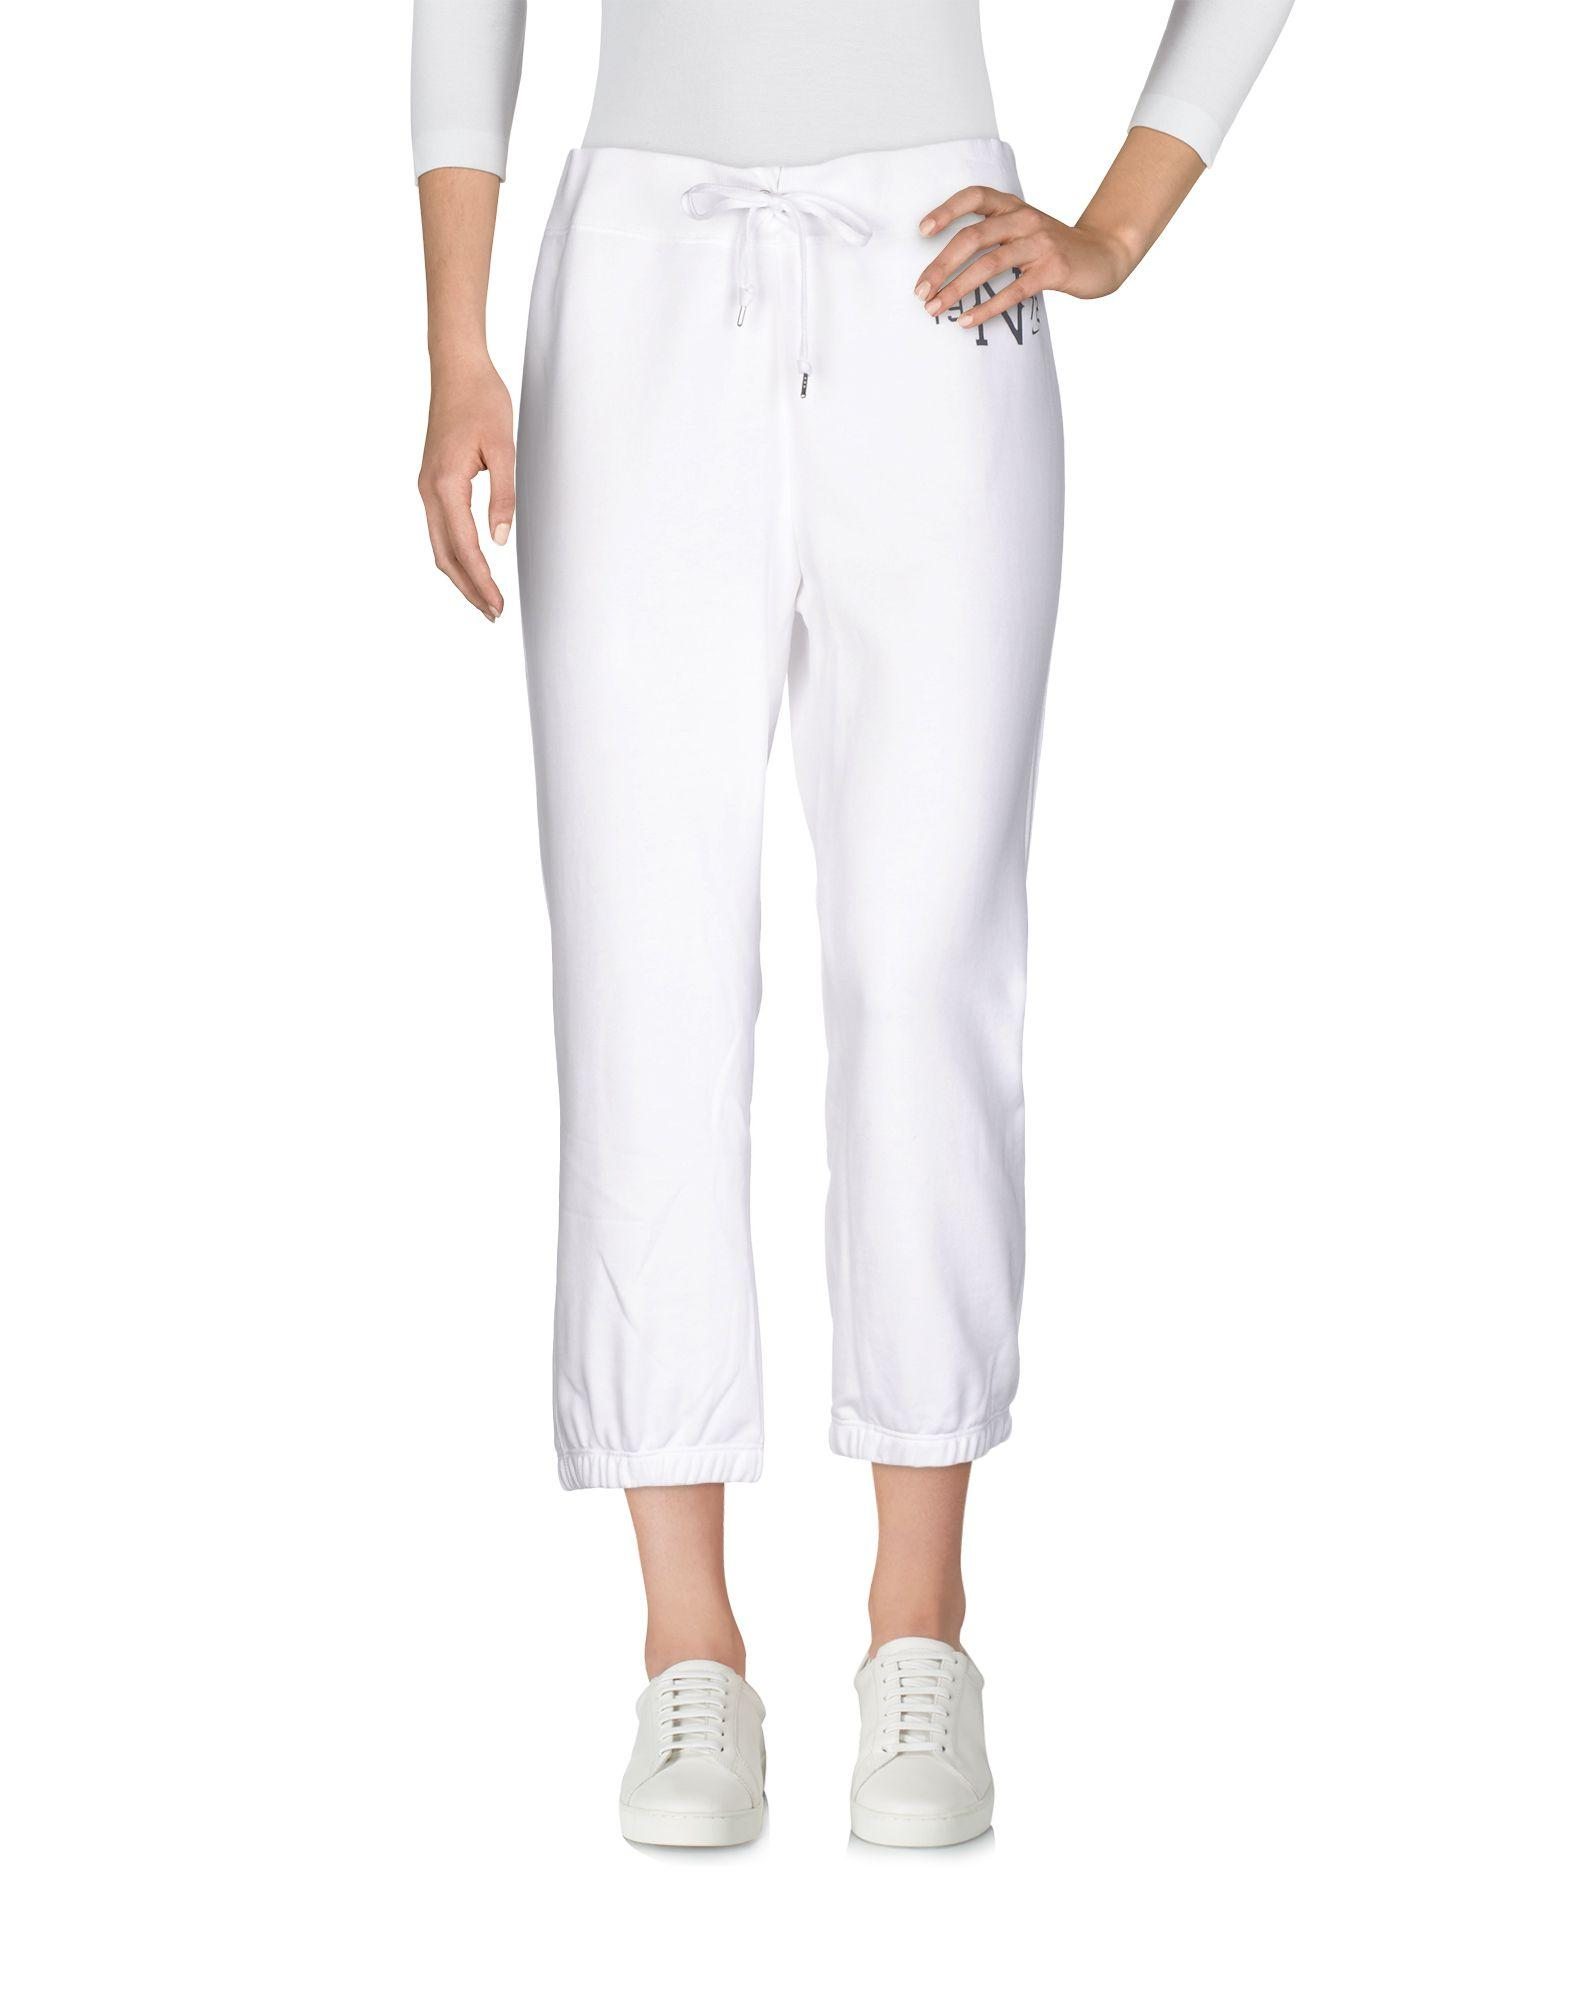 59dffe2e1dc16 Nike Cropped Pants & Culottes In White   ModeSens